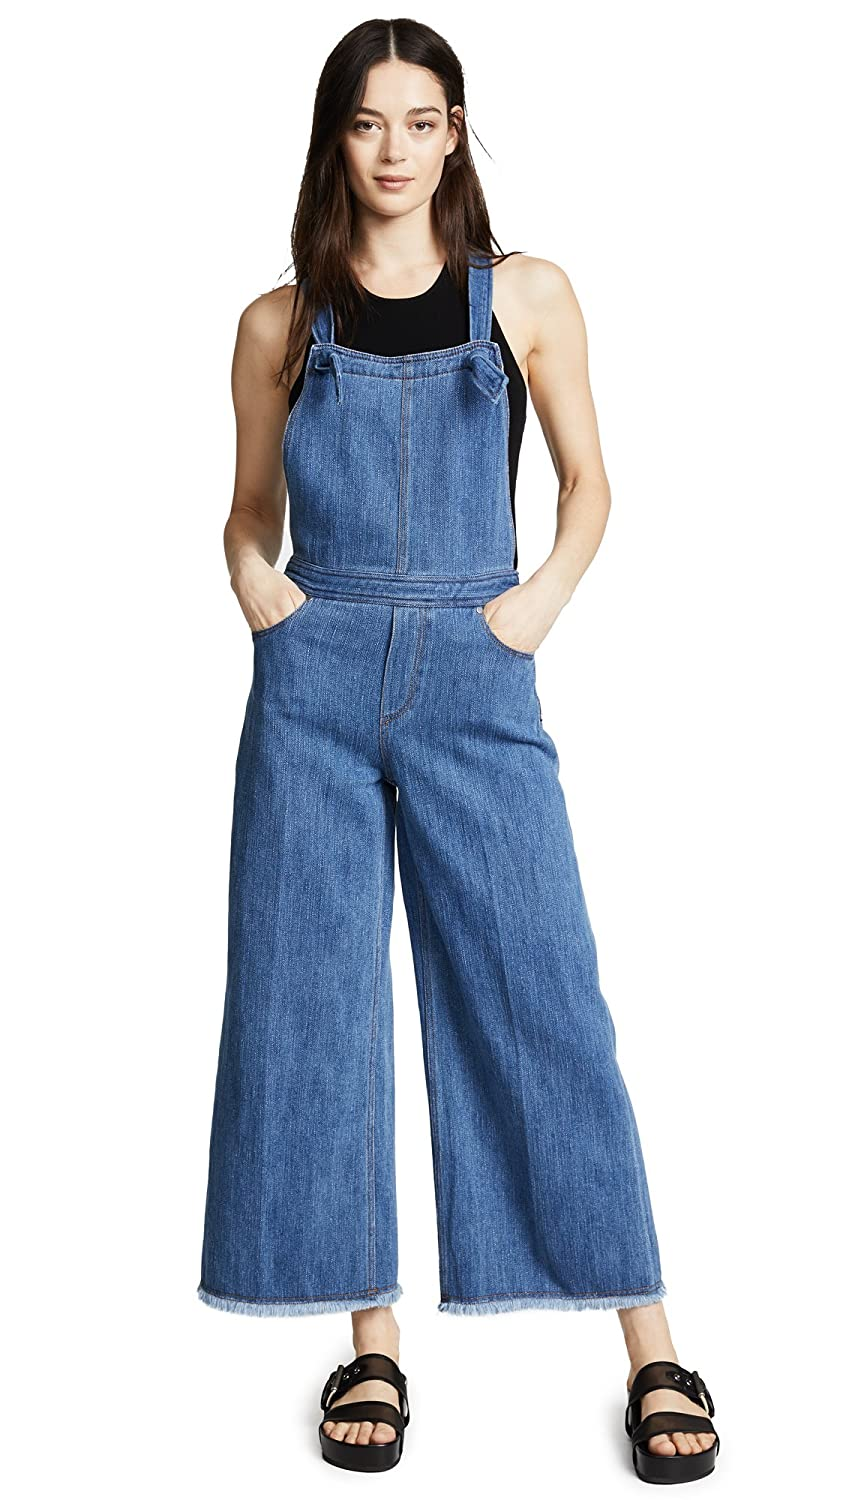 Elizabeth and James Women's Jennette Jumpsuit Medium Denim 6